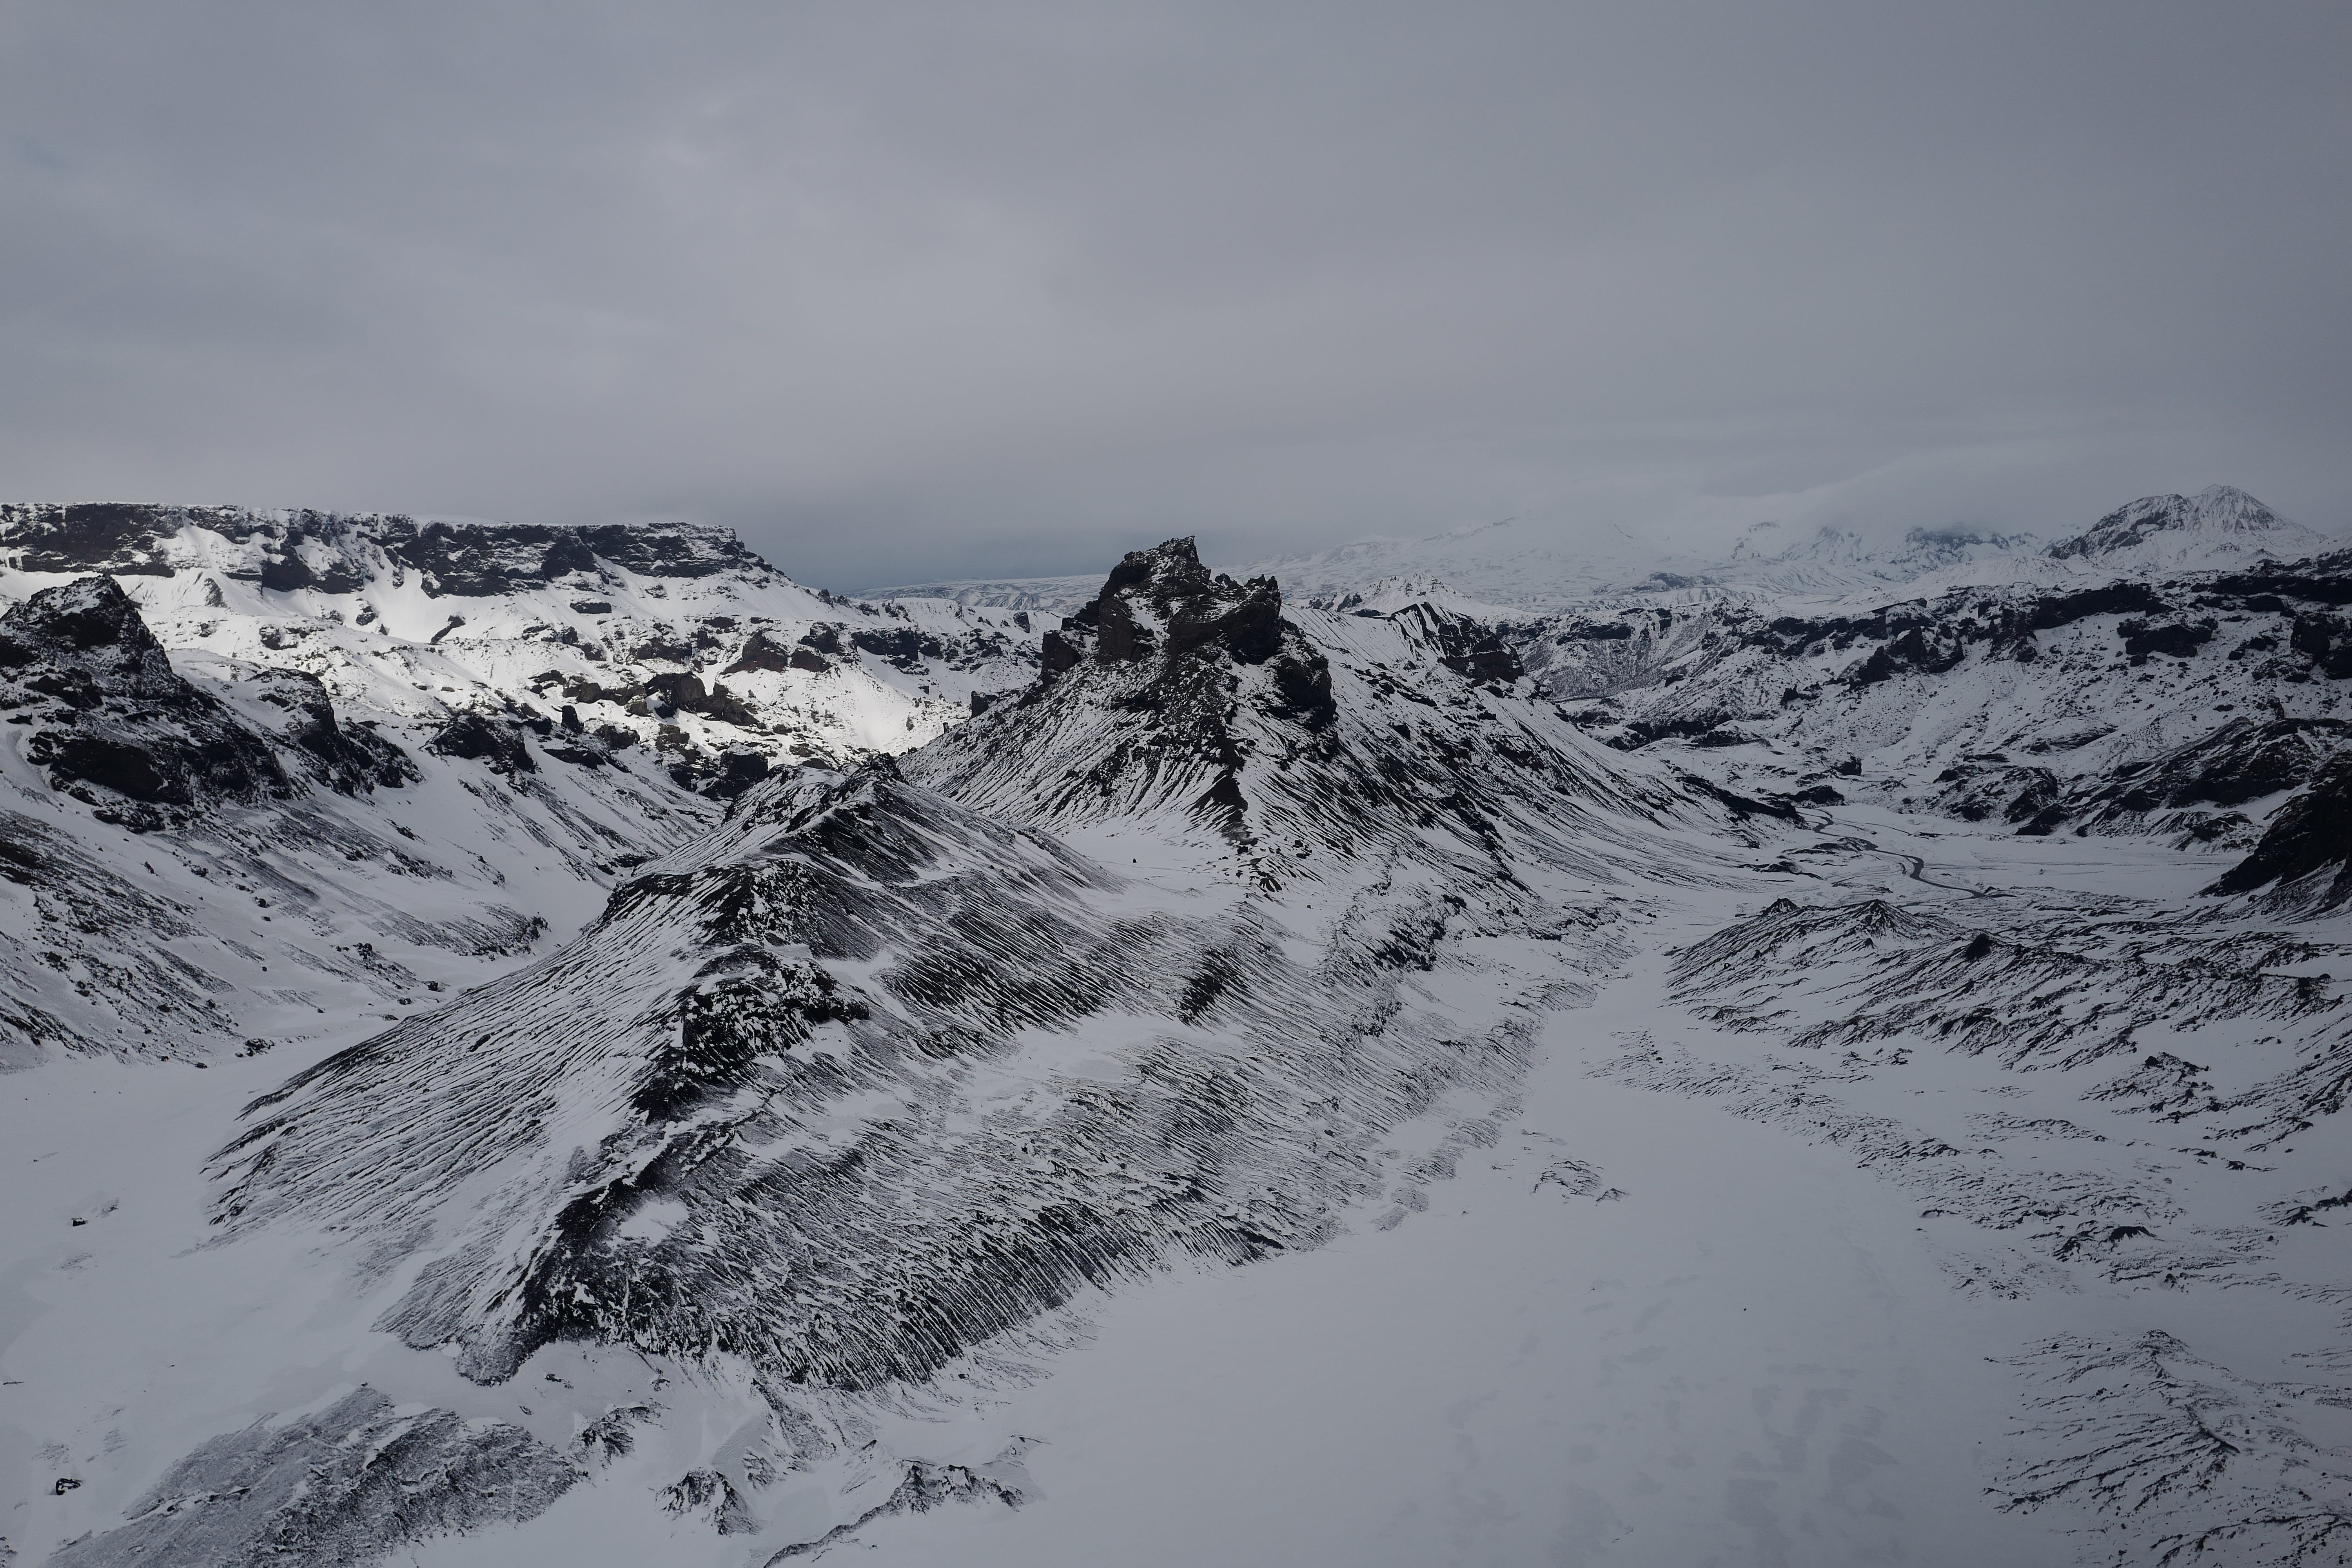 Bird's Eye View Of Snow Capped Mountains